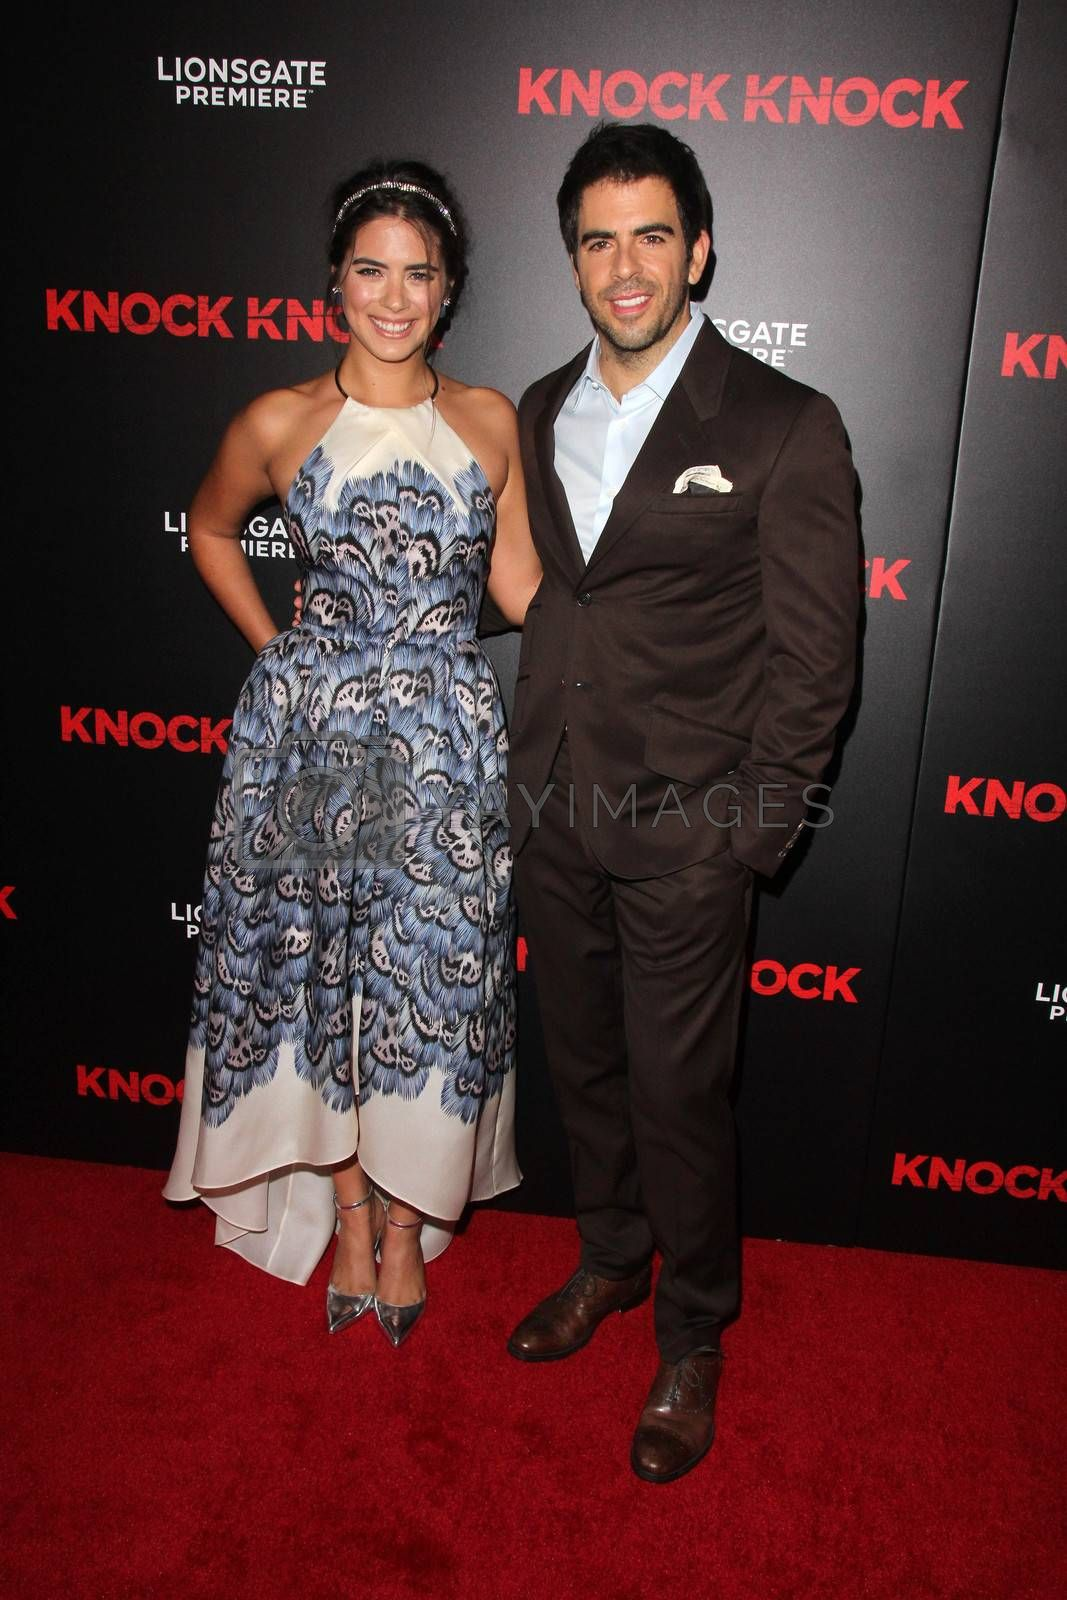 """Lorenza Izzo, Eli Roth at the """"Knock Knock"""" Los Angeles Premiere, TCL Chinese Theater, Hollywood, CA 10-08-15/ImageCollect by ImageCollect"""